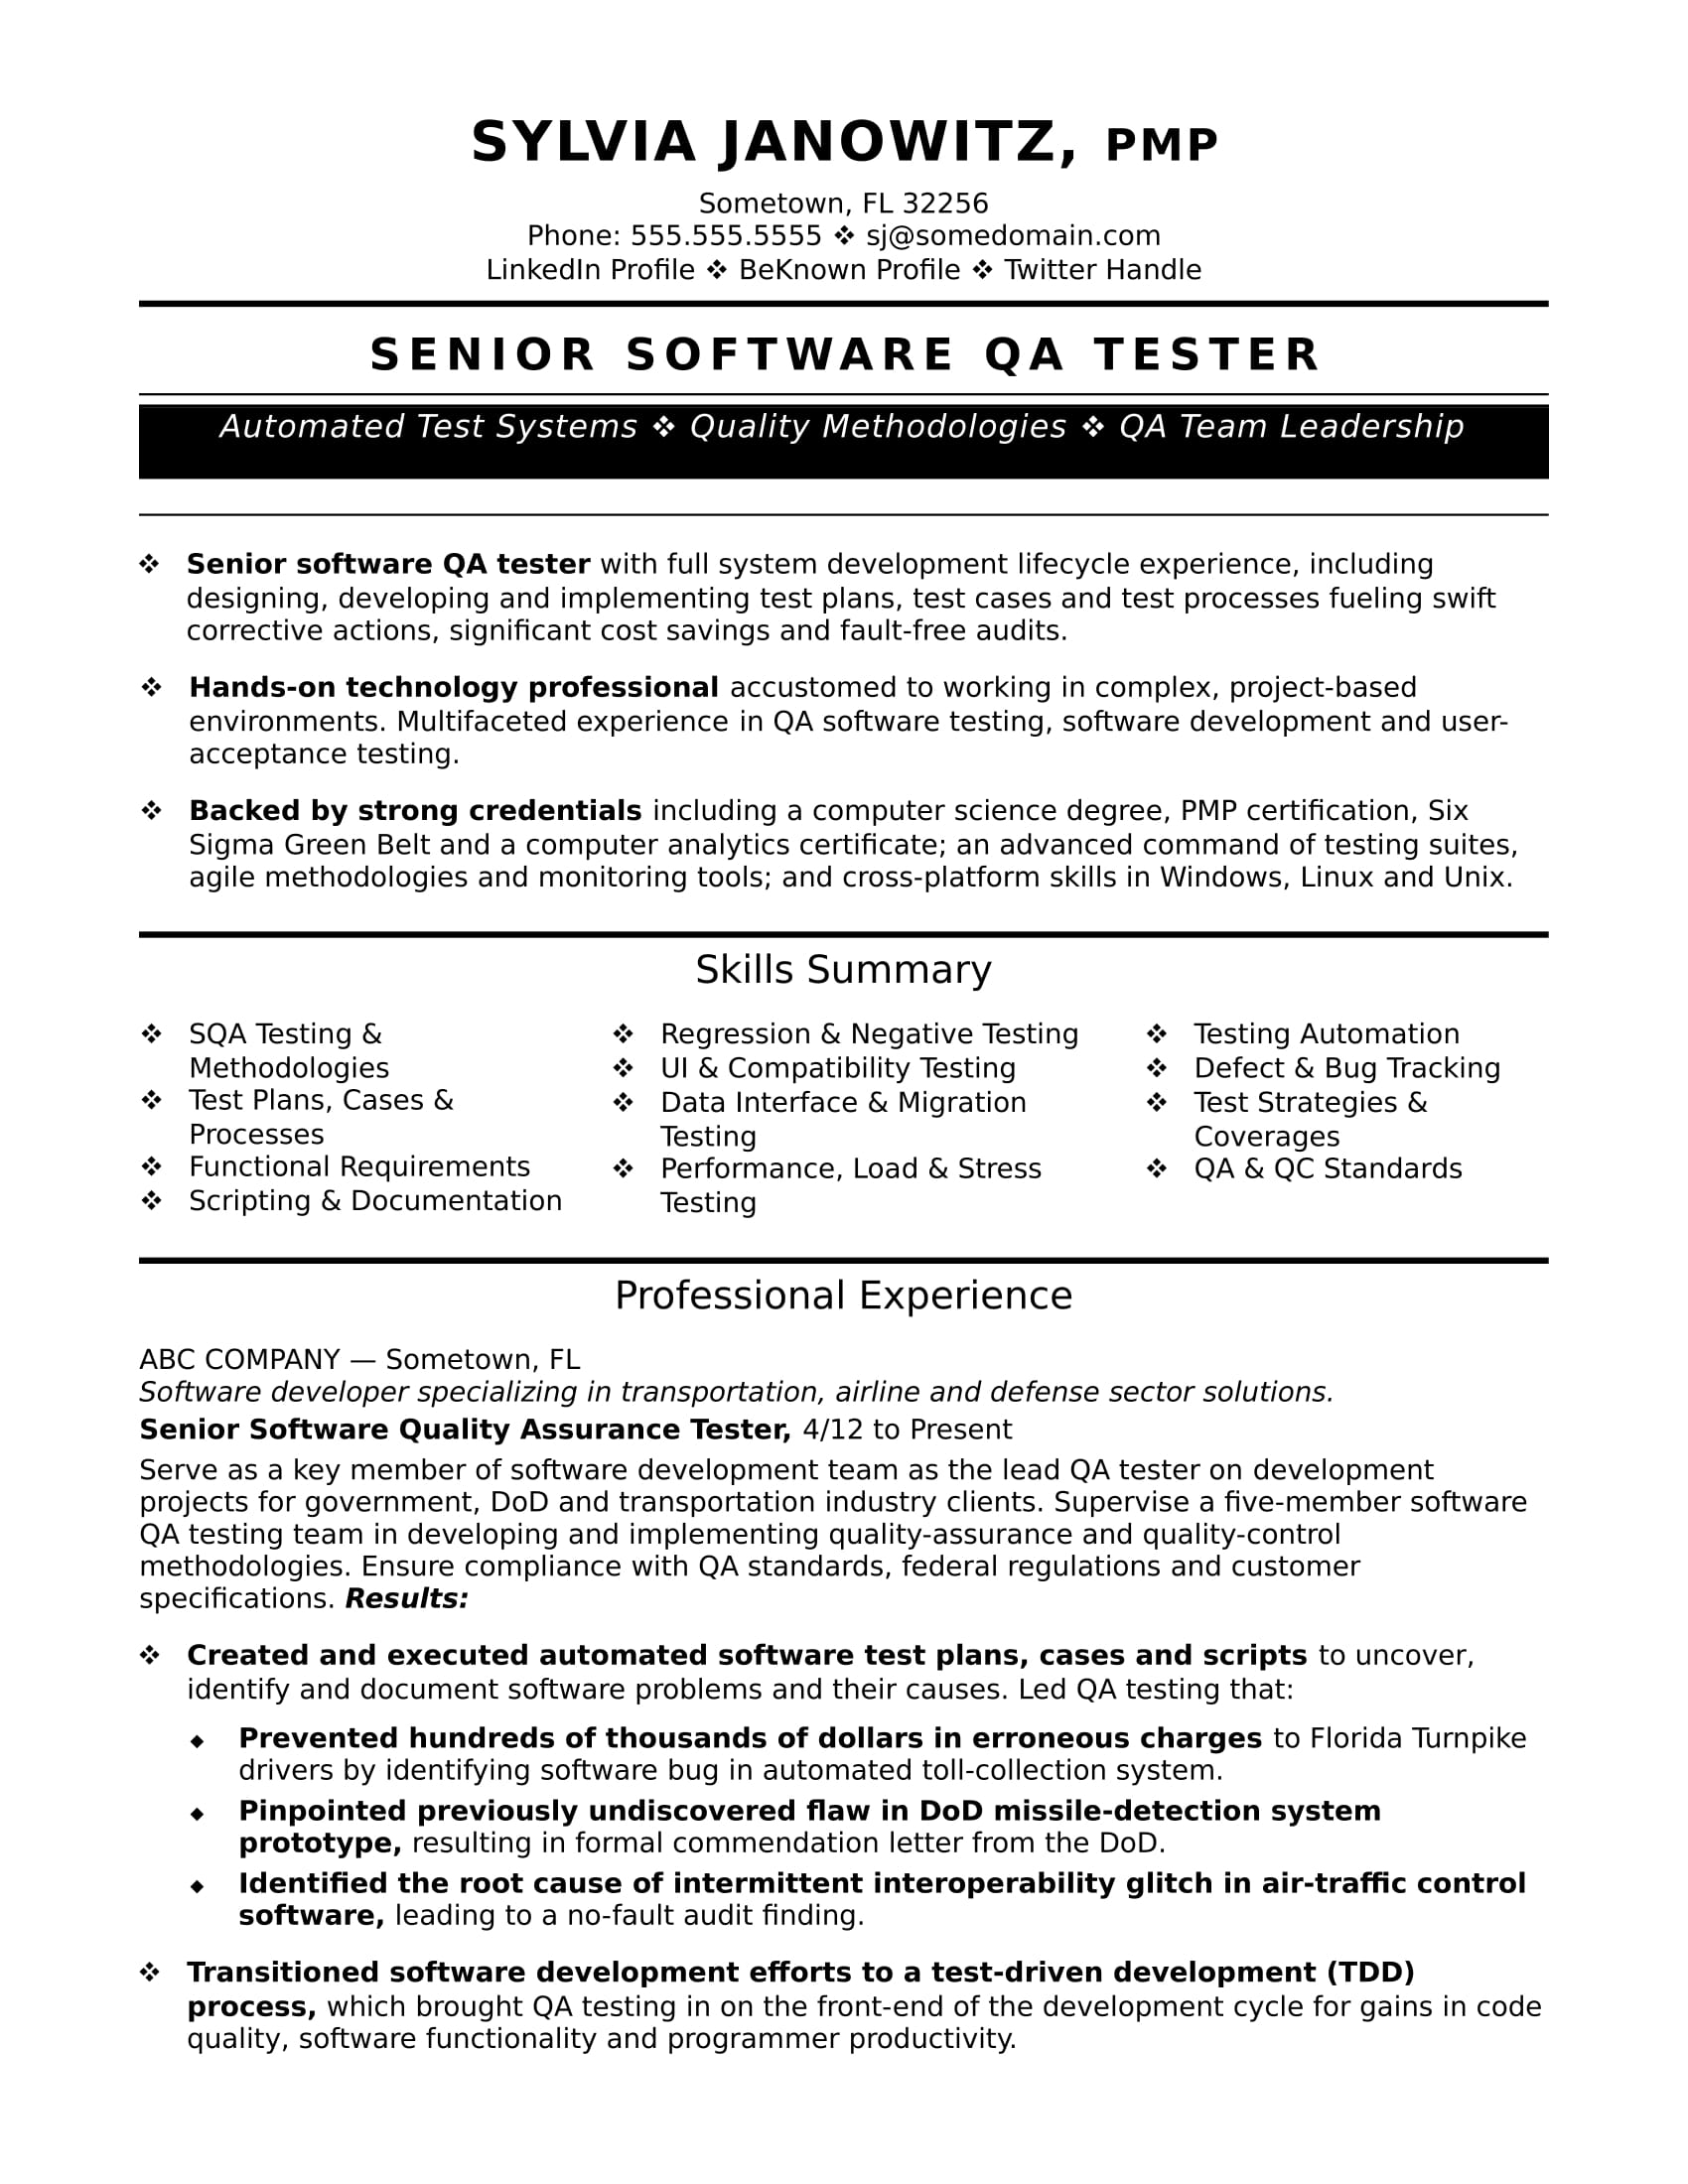 experienced qa software tester resume sample monster com rh monster com manual testing resume sample for 2 years experience manual testing resume sample for 5 years experience